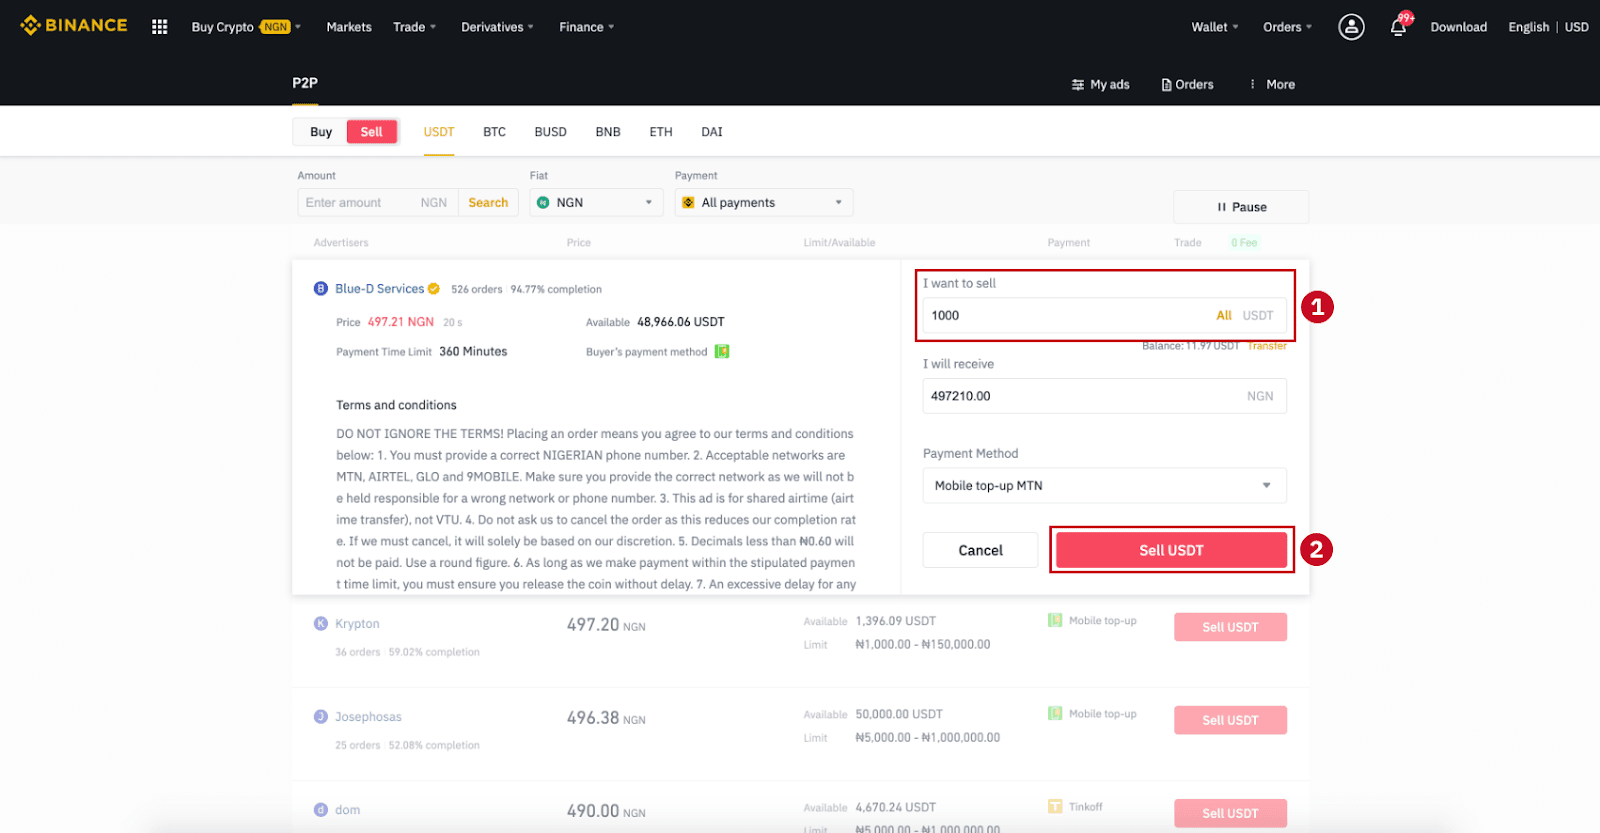 How to Sign in and Withdraw from Binance